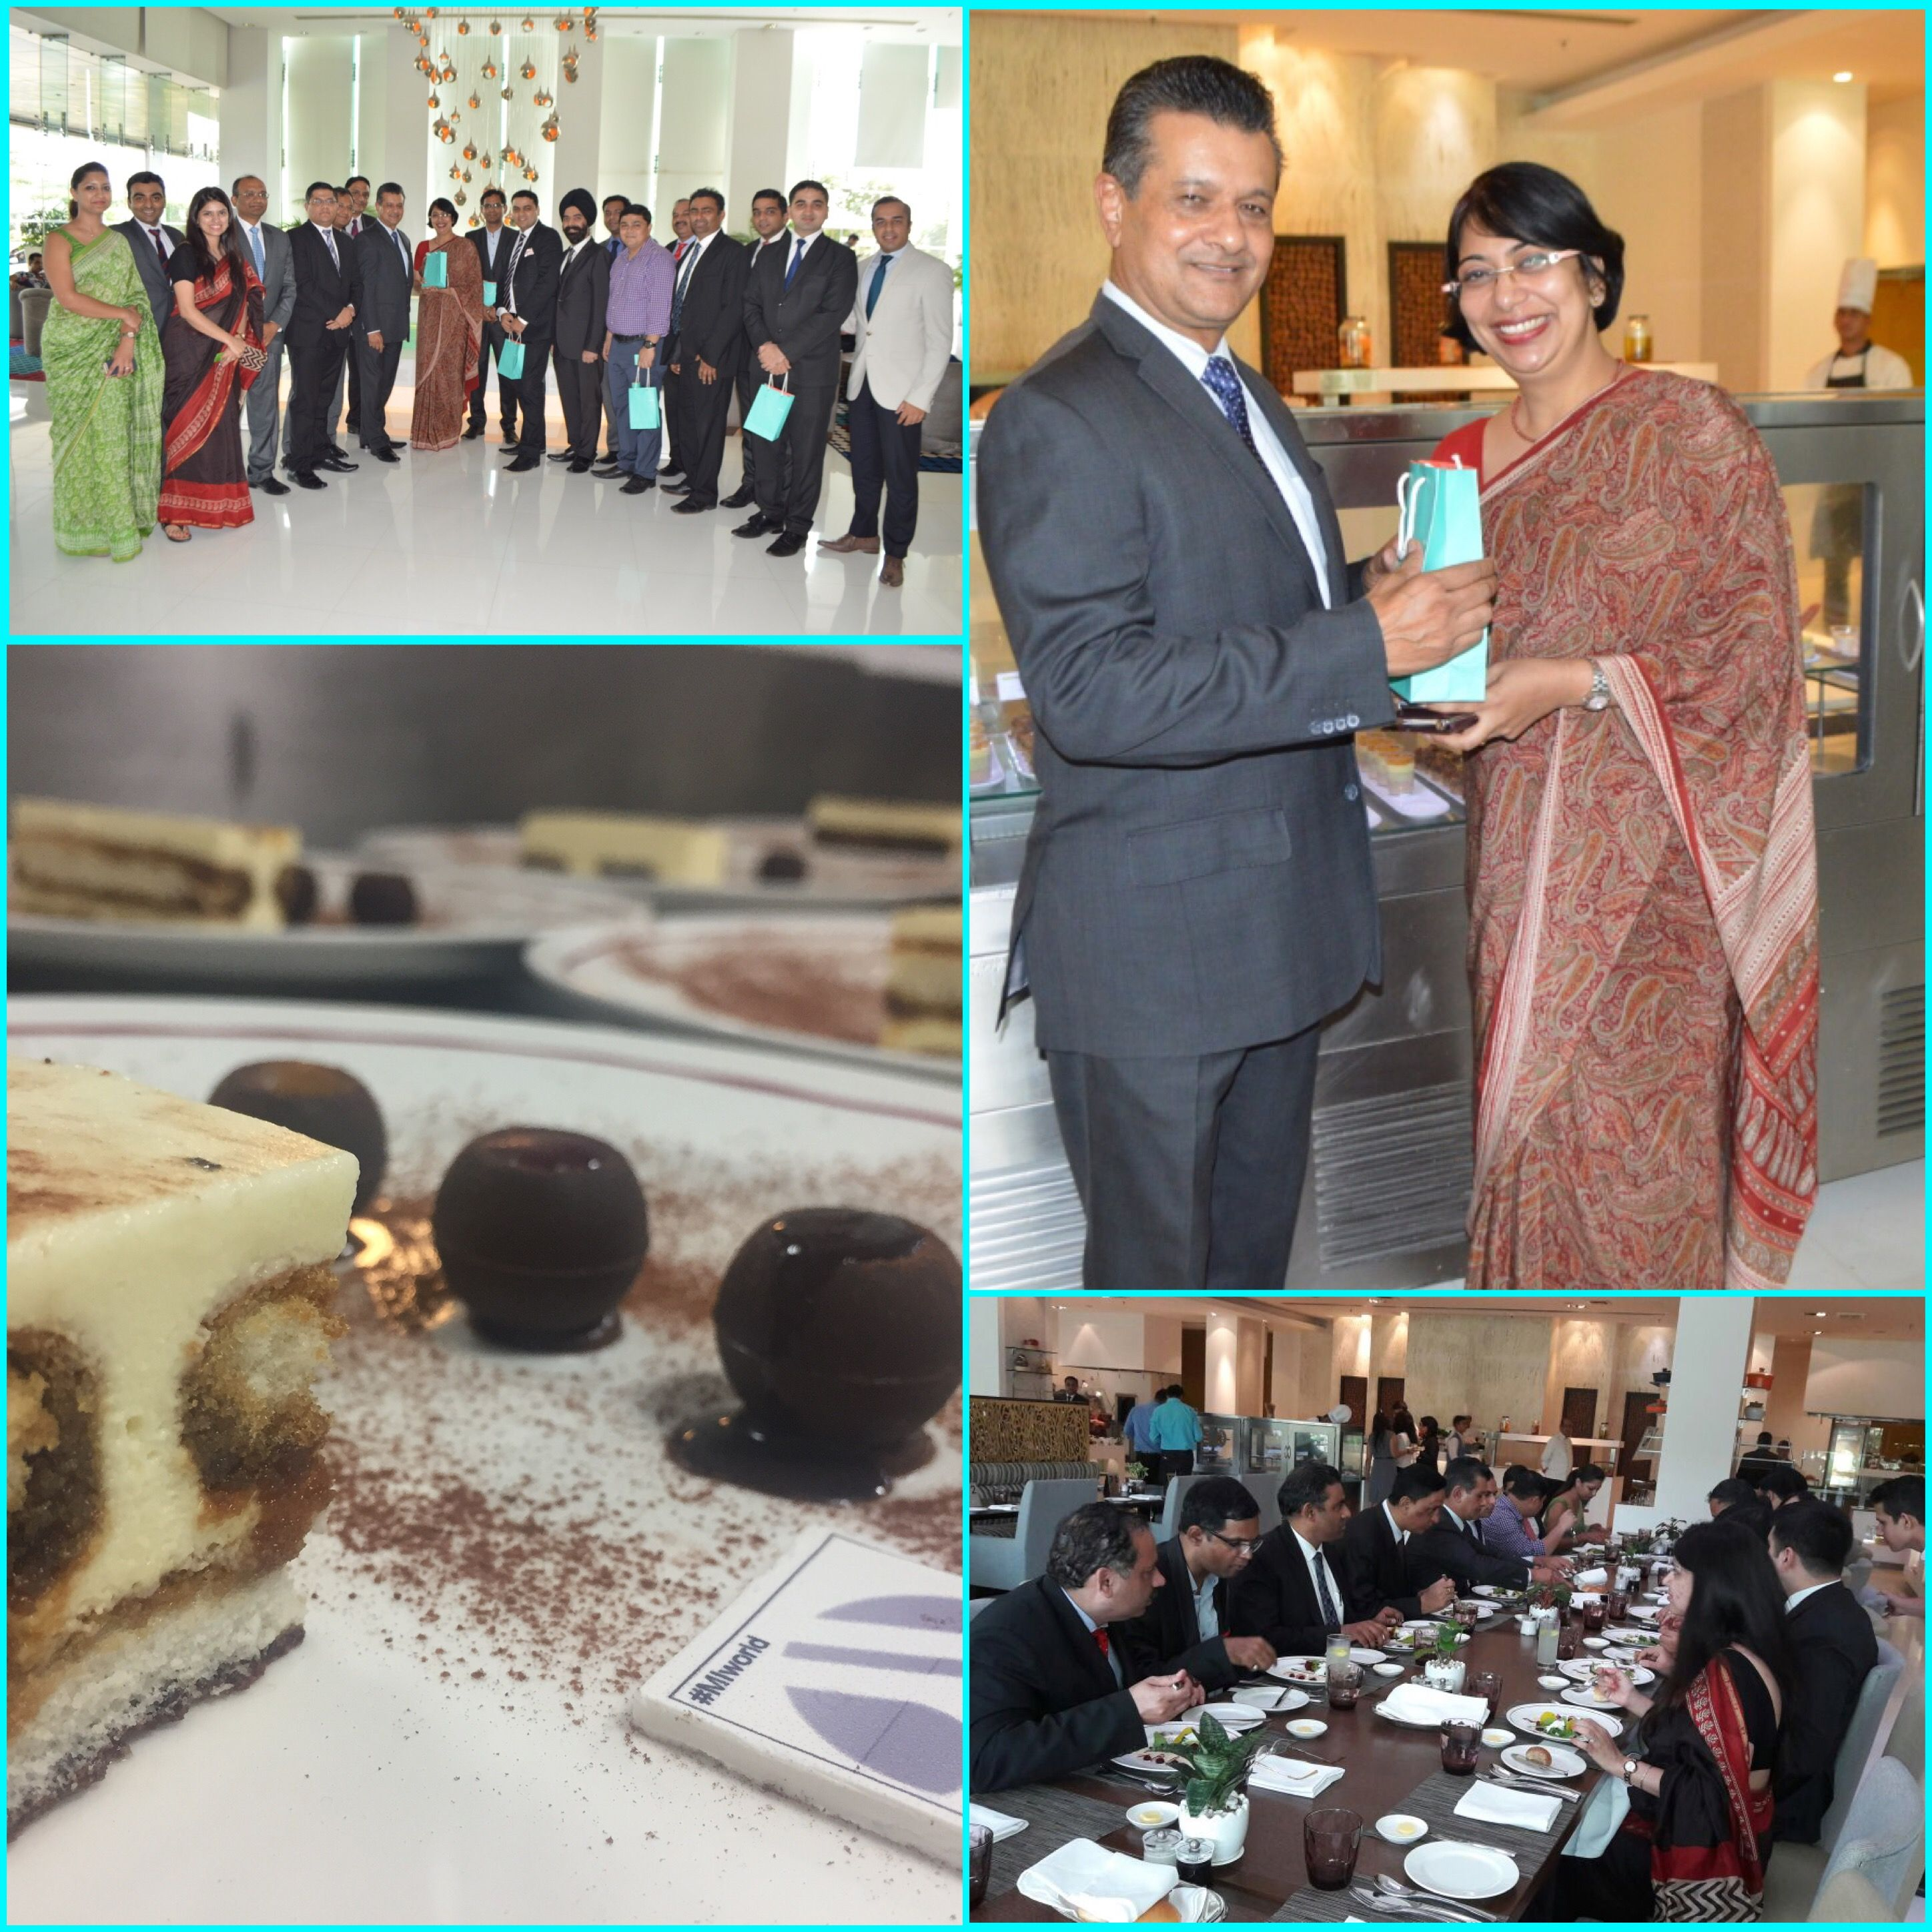 We played host to our new family entrant Marriott International and spent the day well with scrumptious lunch & delightful conversation. Courtyard Marriott Gurgaon  #Togetherwearebetter #MIAPAC #MIWorld #JourneyStartsHereAP